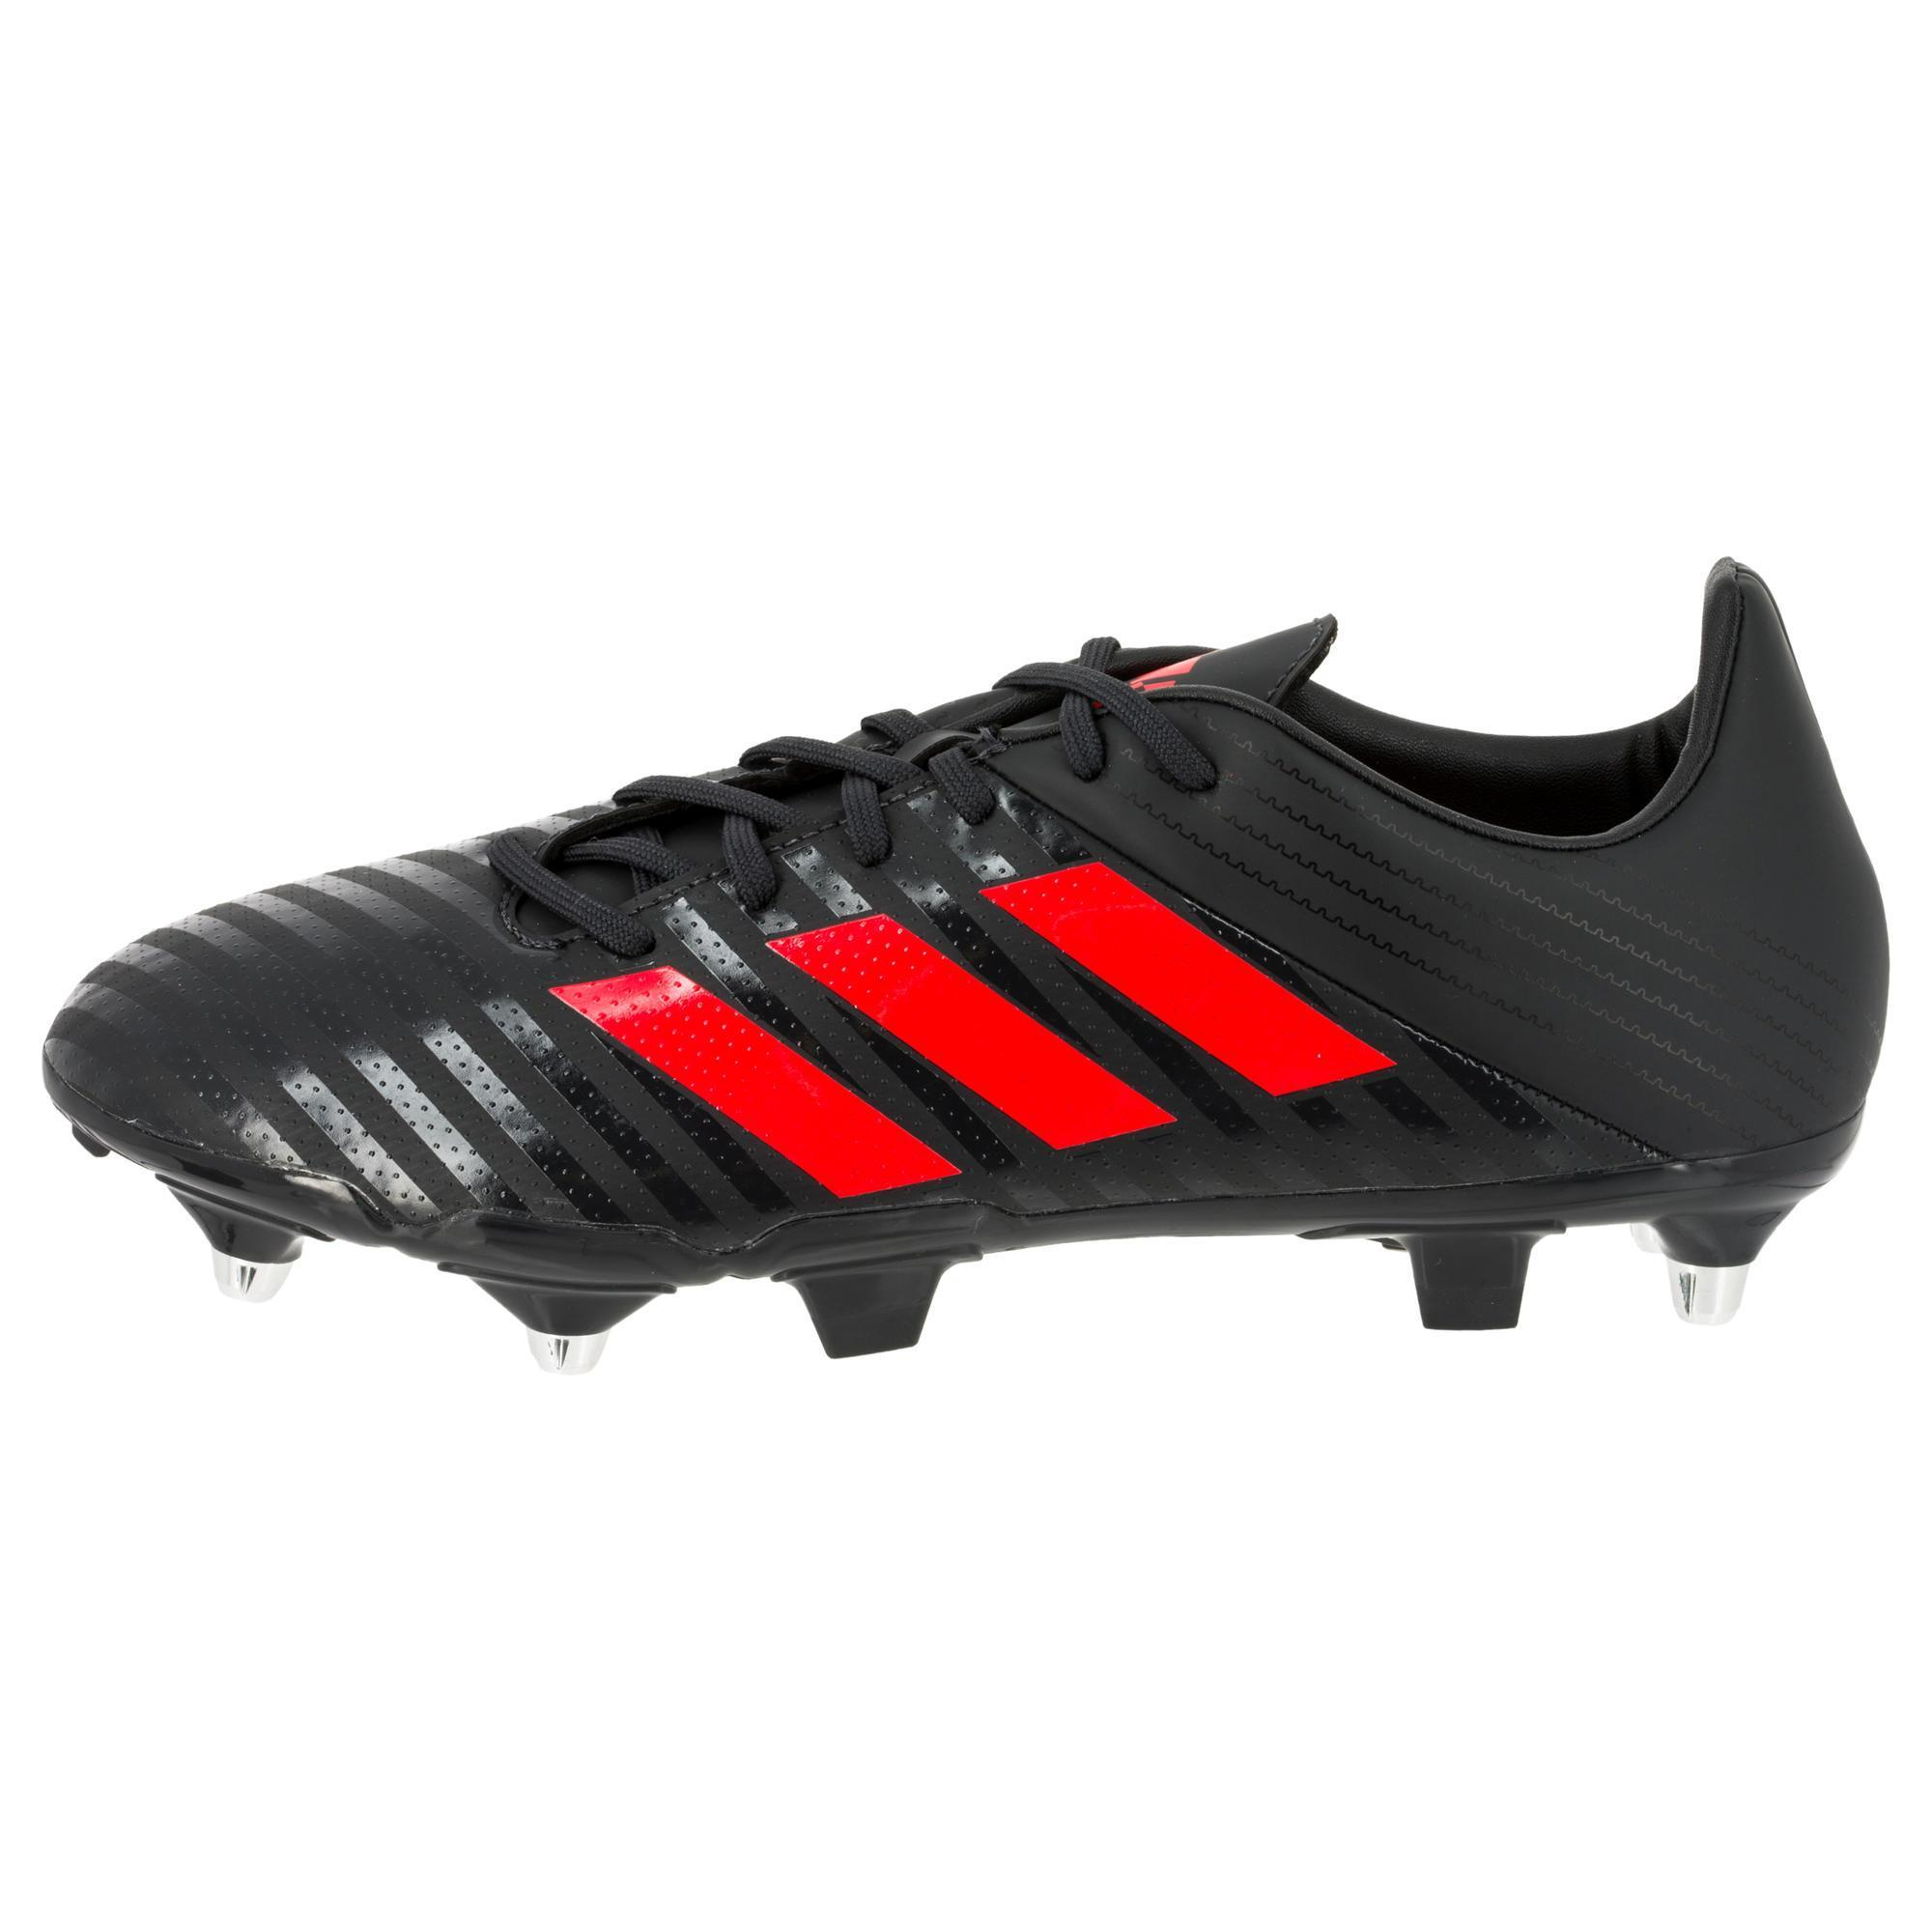 Adidas Chaussure Hybride De Nw4bw1qc Adulte Grisrouge Sg Malice Rugby odCWrxBe